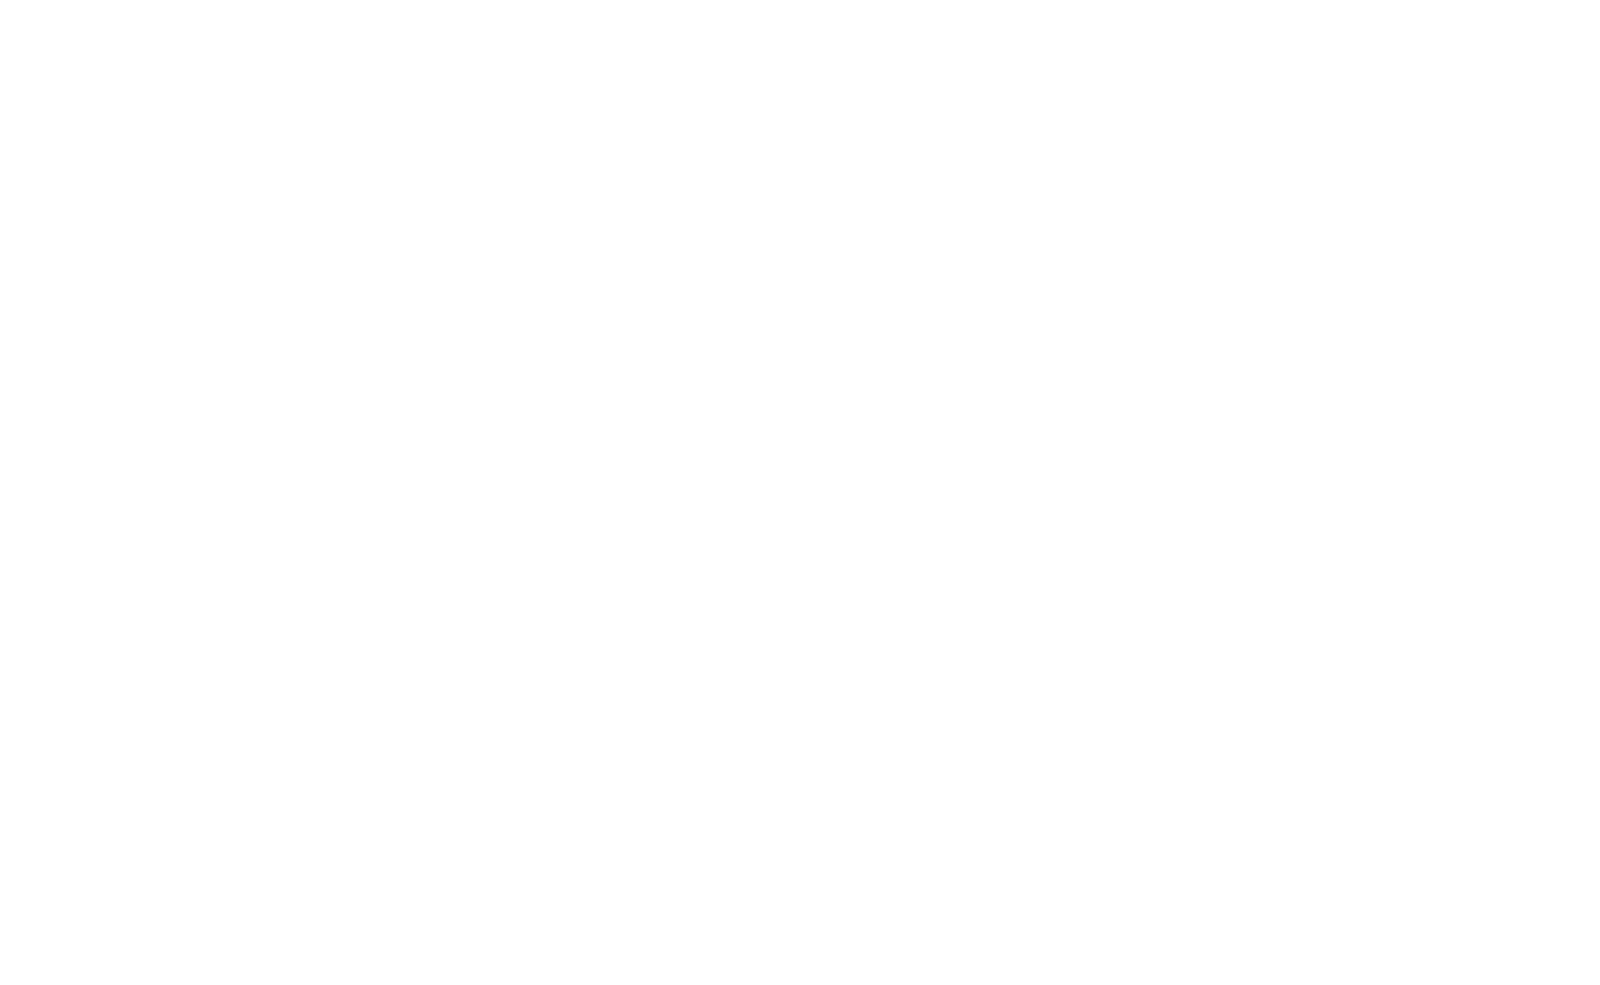 Porterhouse Property Group